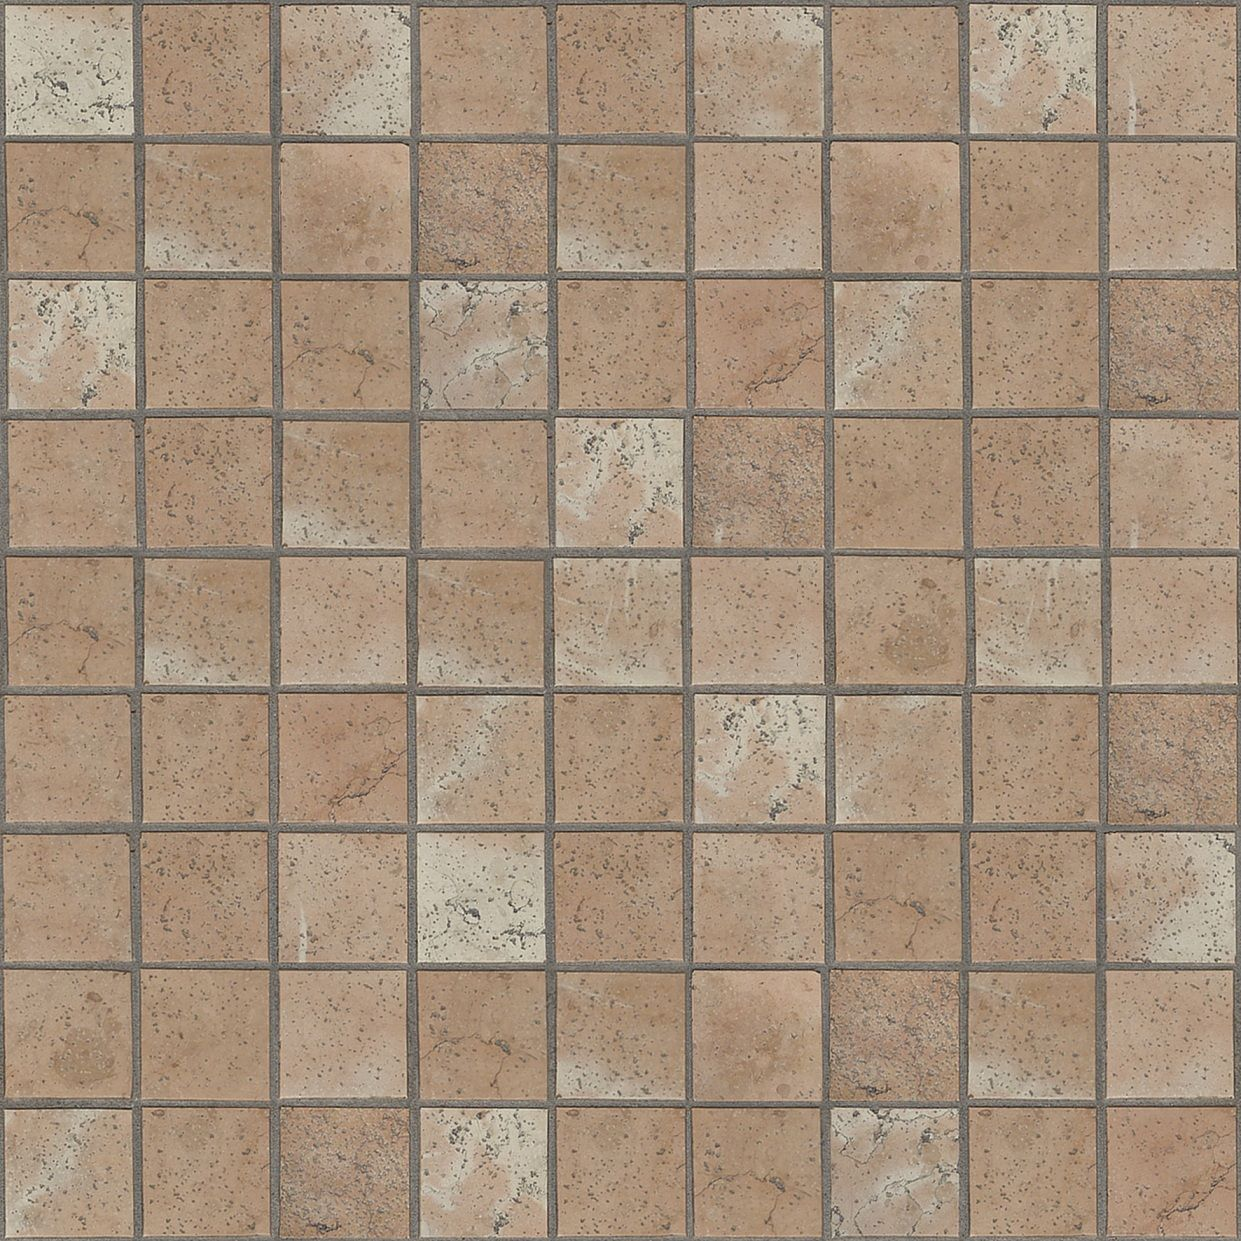 High Resolution Bathroom Floor Tile Texture Seamless Trendecors